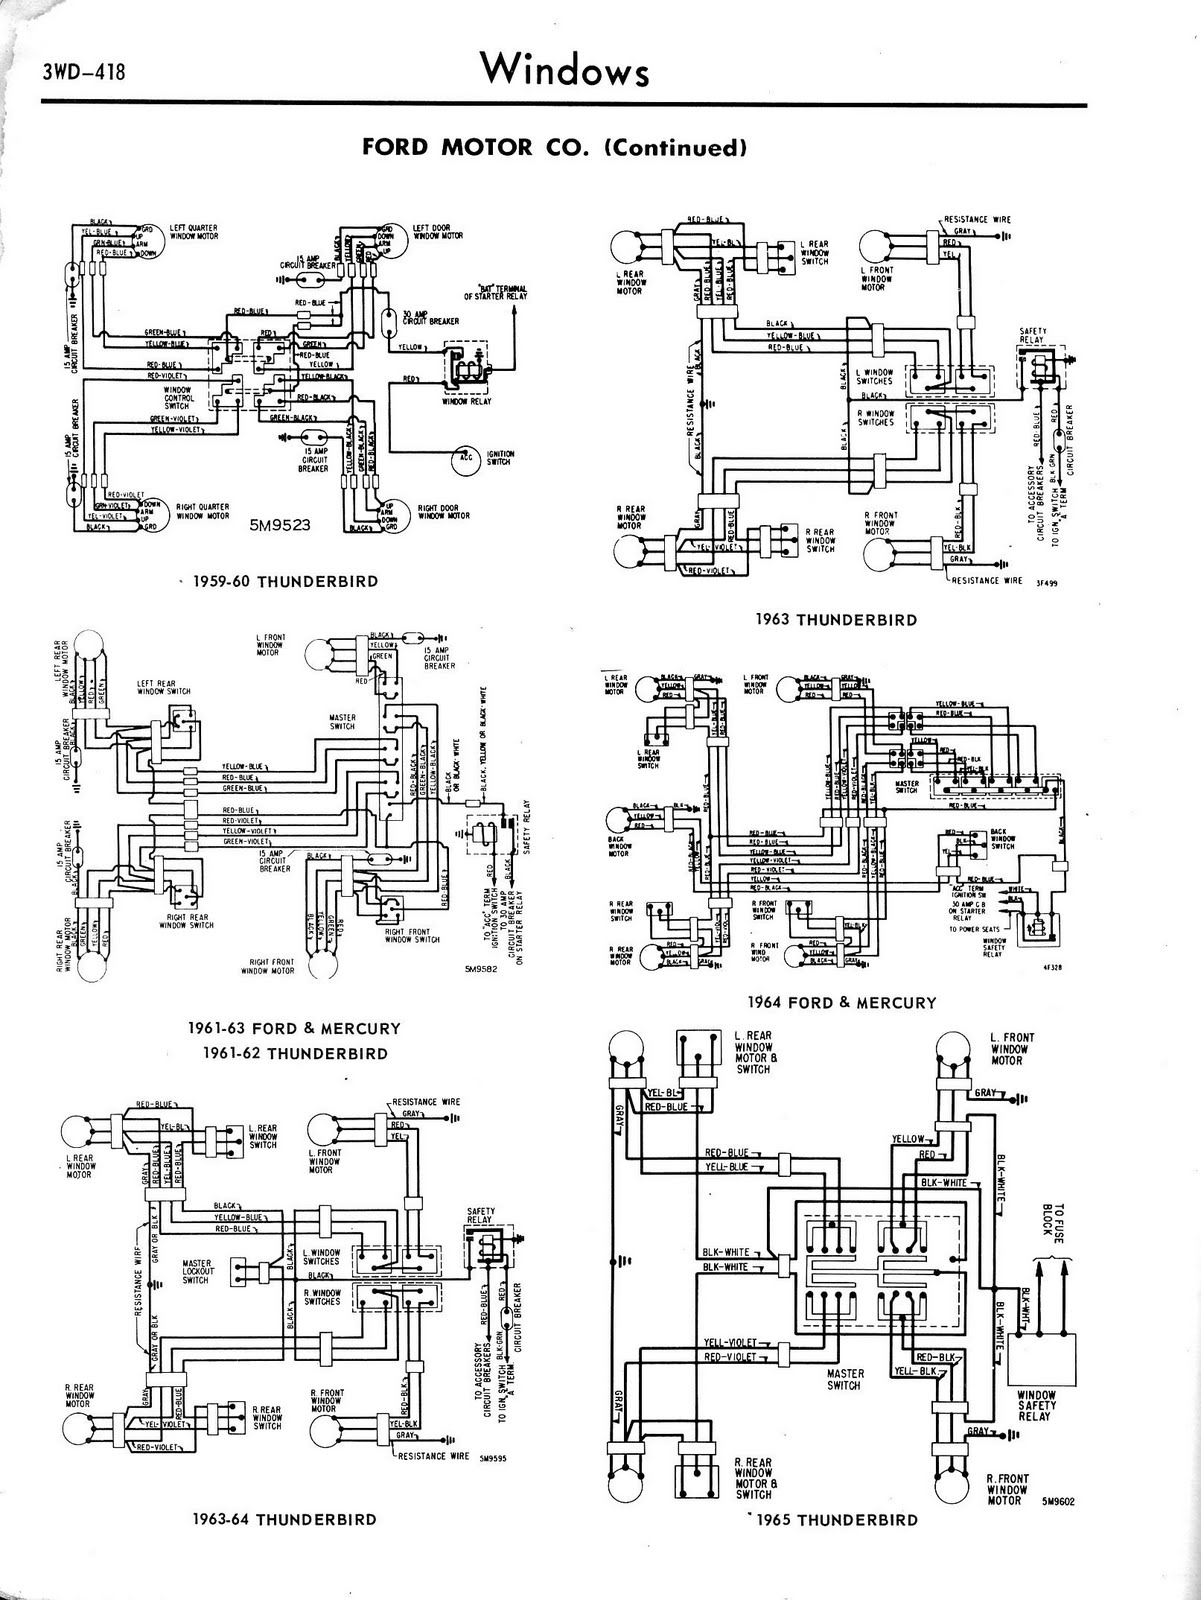 1965 Ford Thunderbird Alternator Wiring Diagram 47 65 Chevy